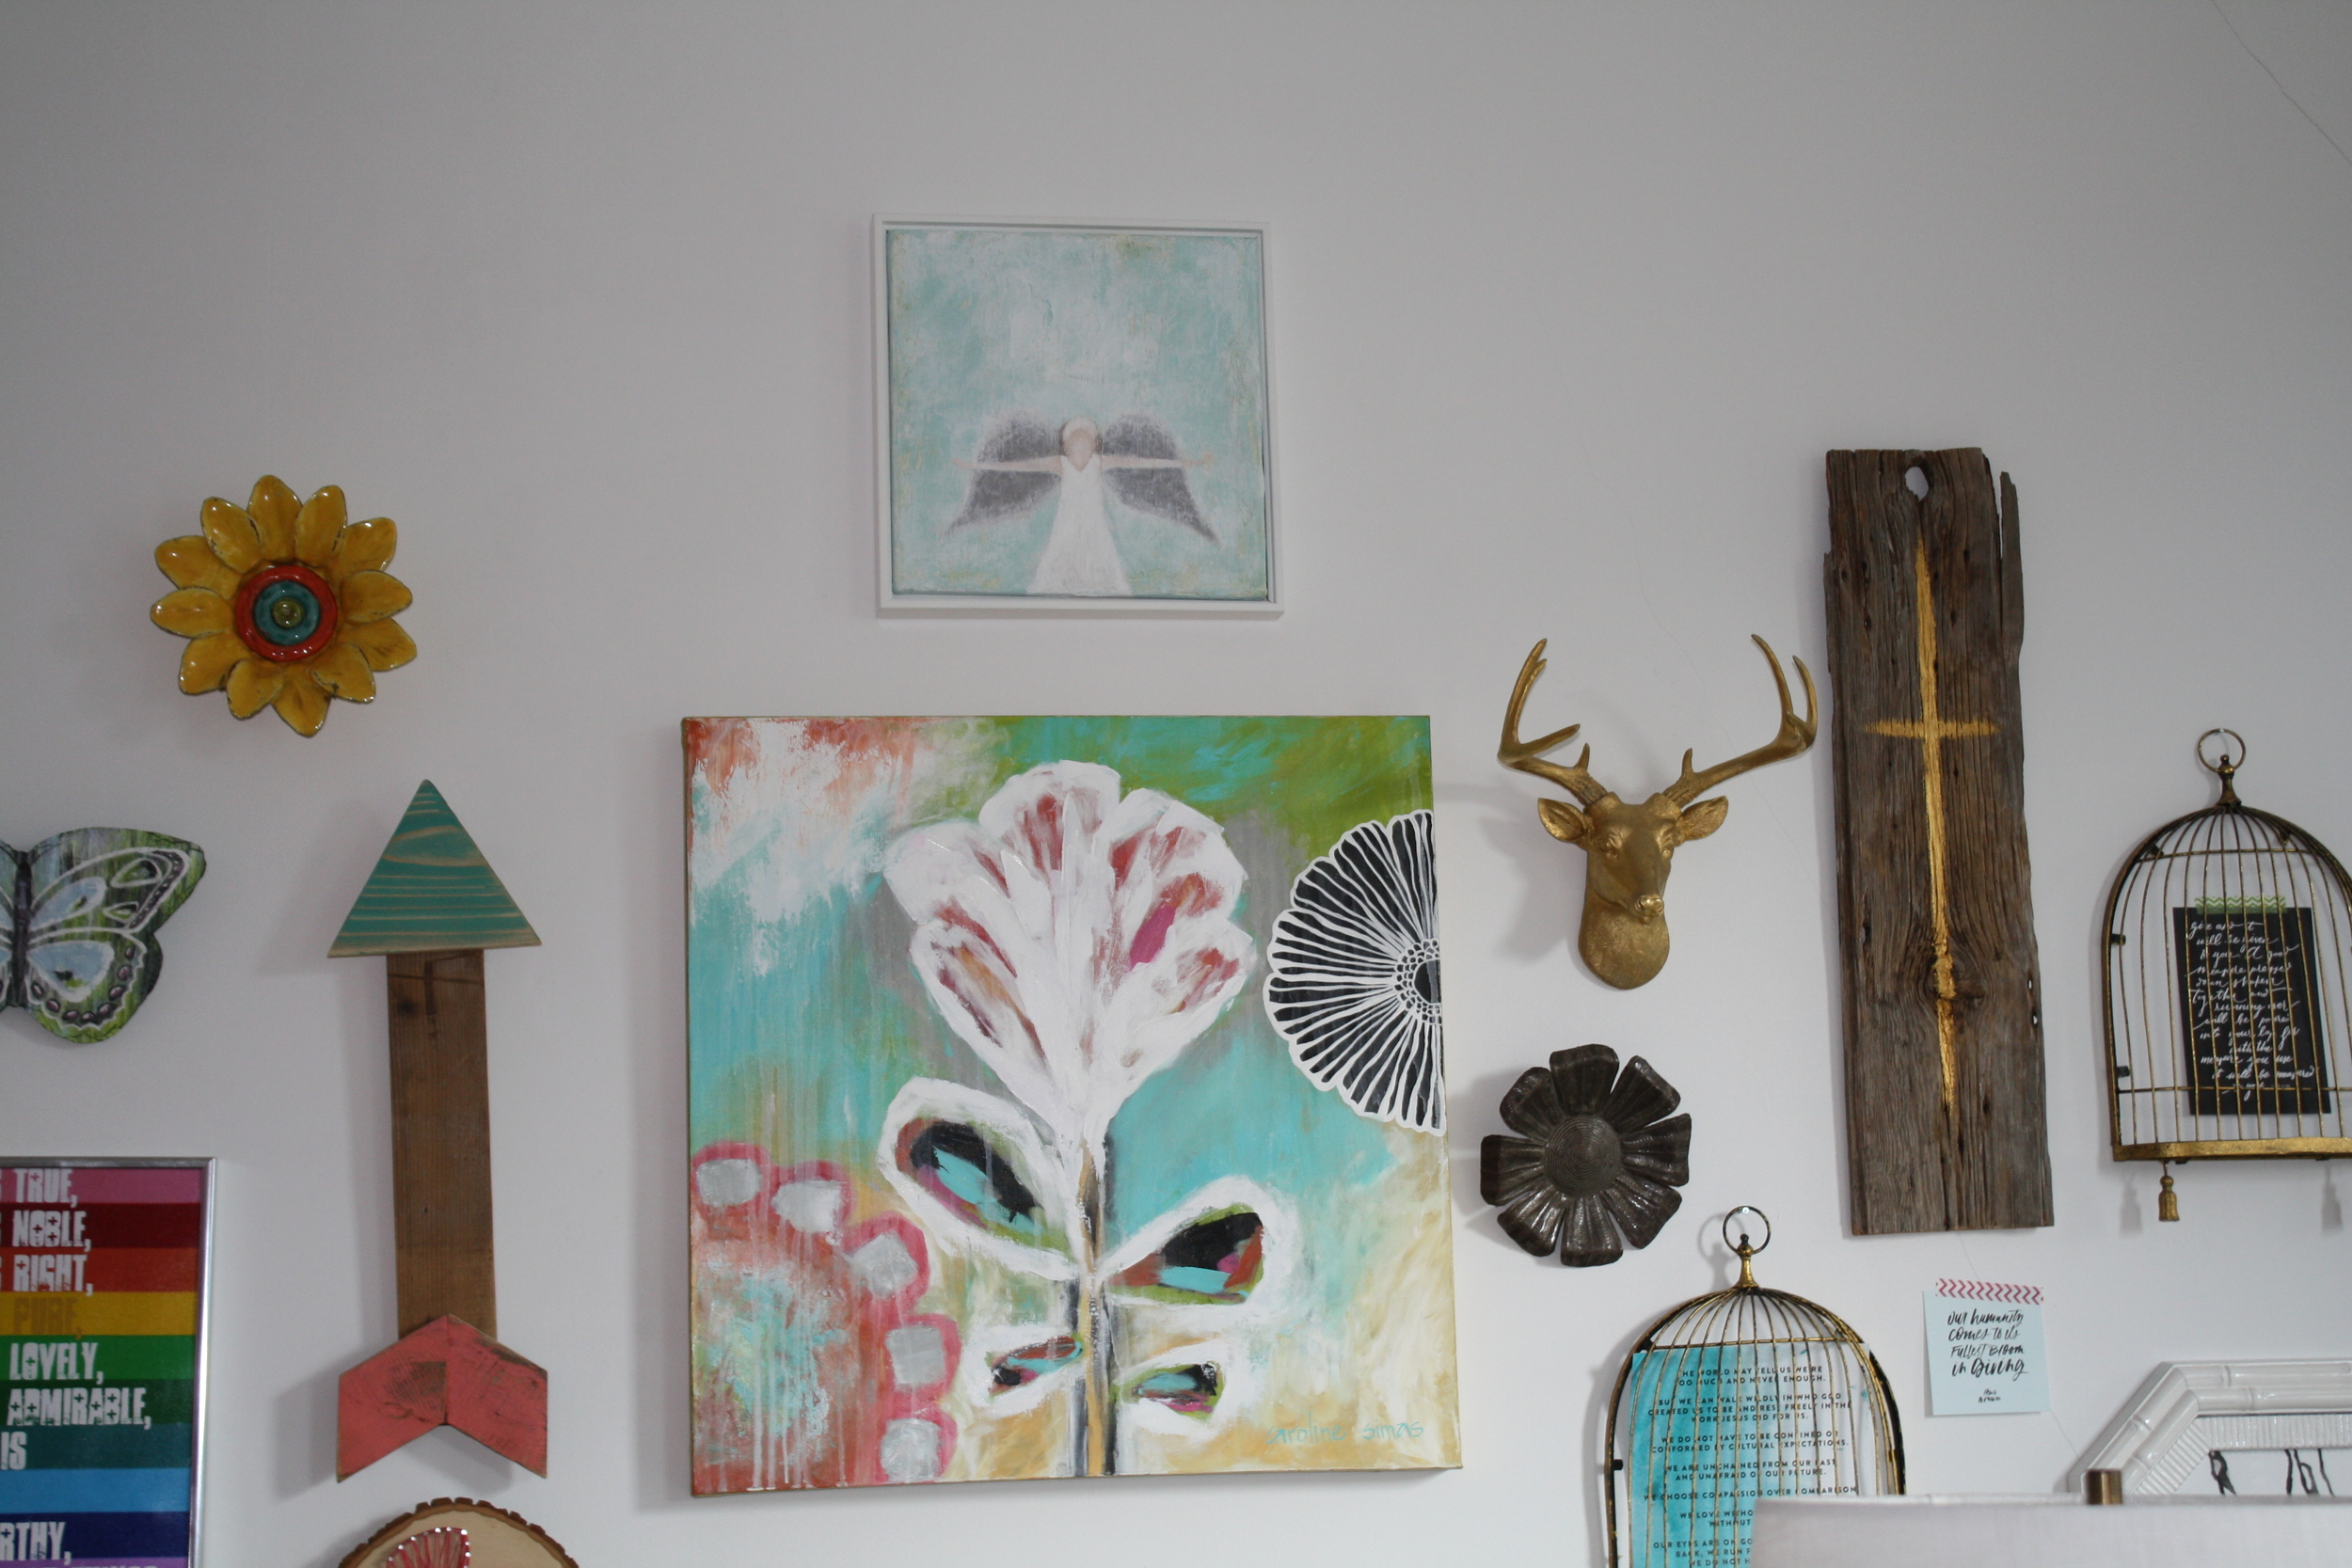 LOVE, LOVE, LOVE it all! The cross on wood, the angel, the arrow, the birdages....